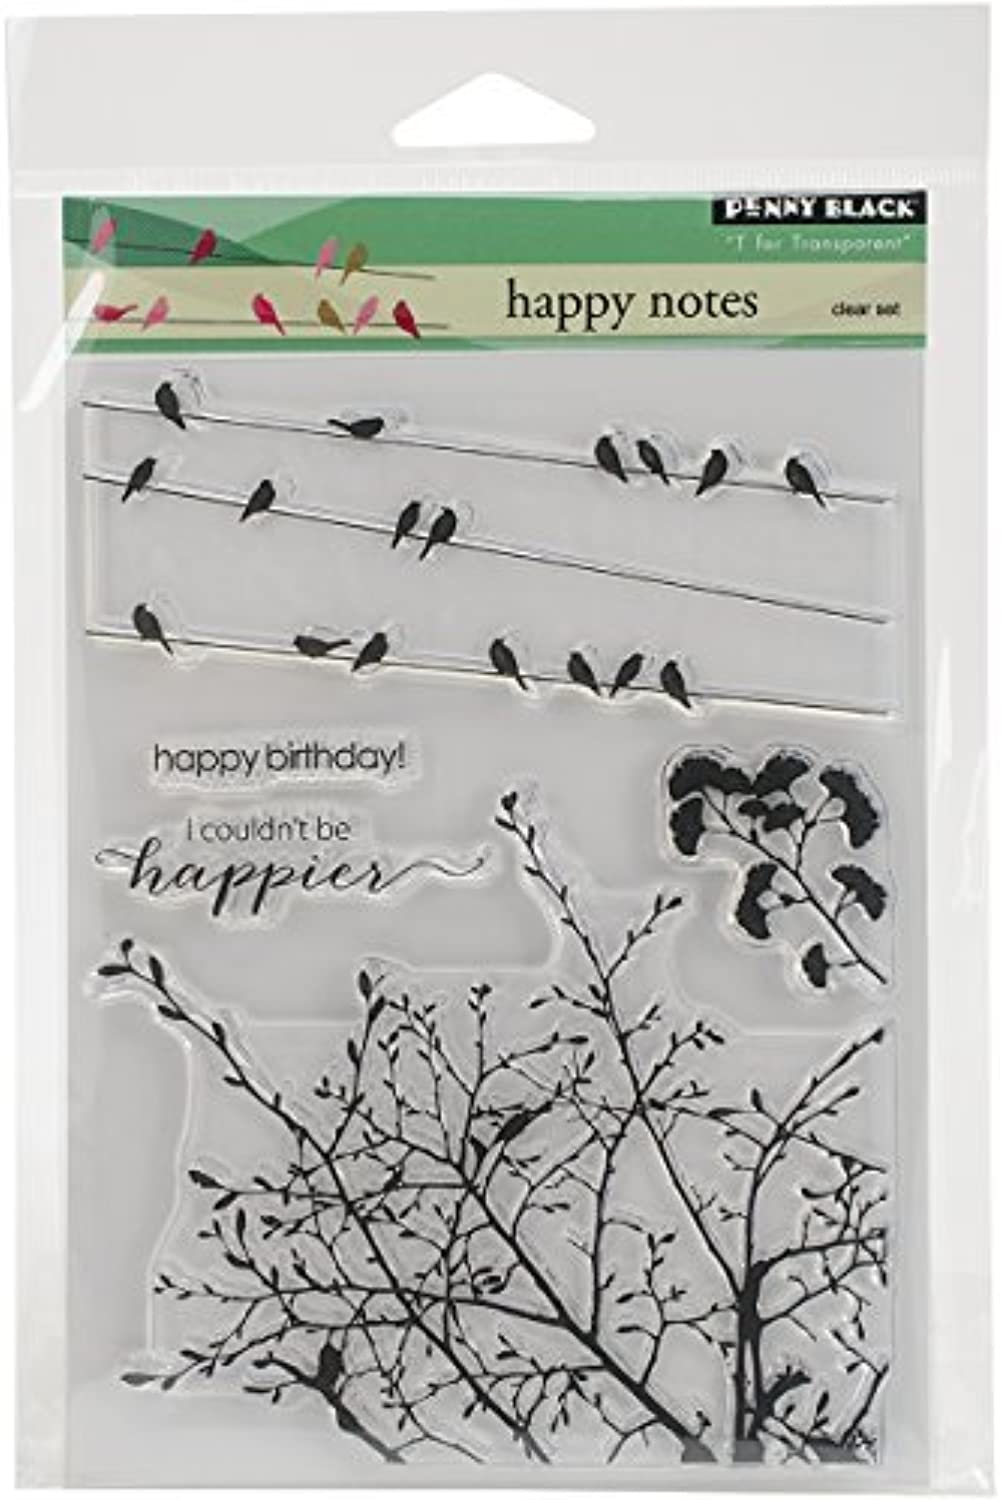 Penny schwarz Happy Notes Clear Stamps Sheet, 5 x 6.5 by Penny schwarz B01KB77E5K | Überlegen